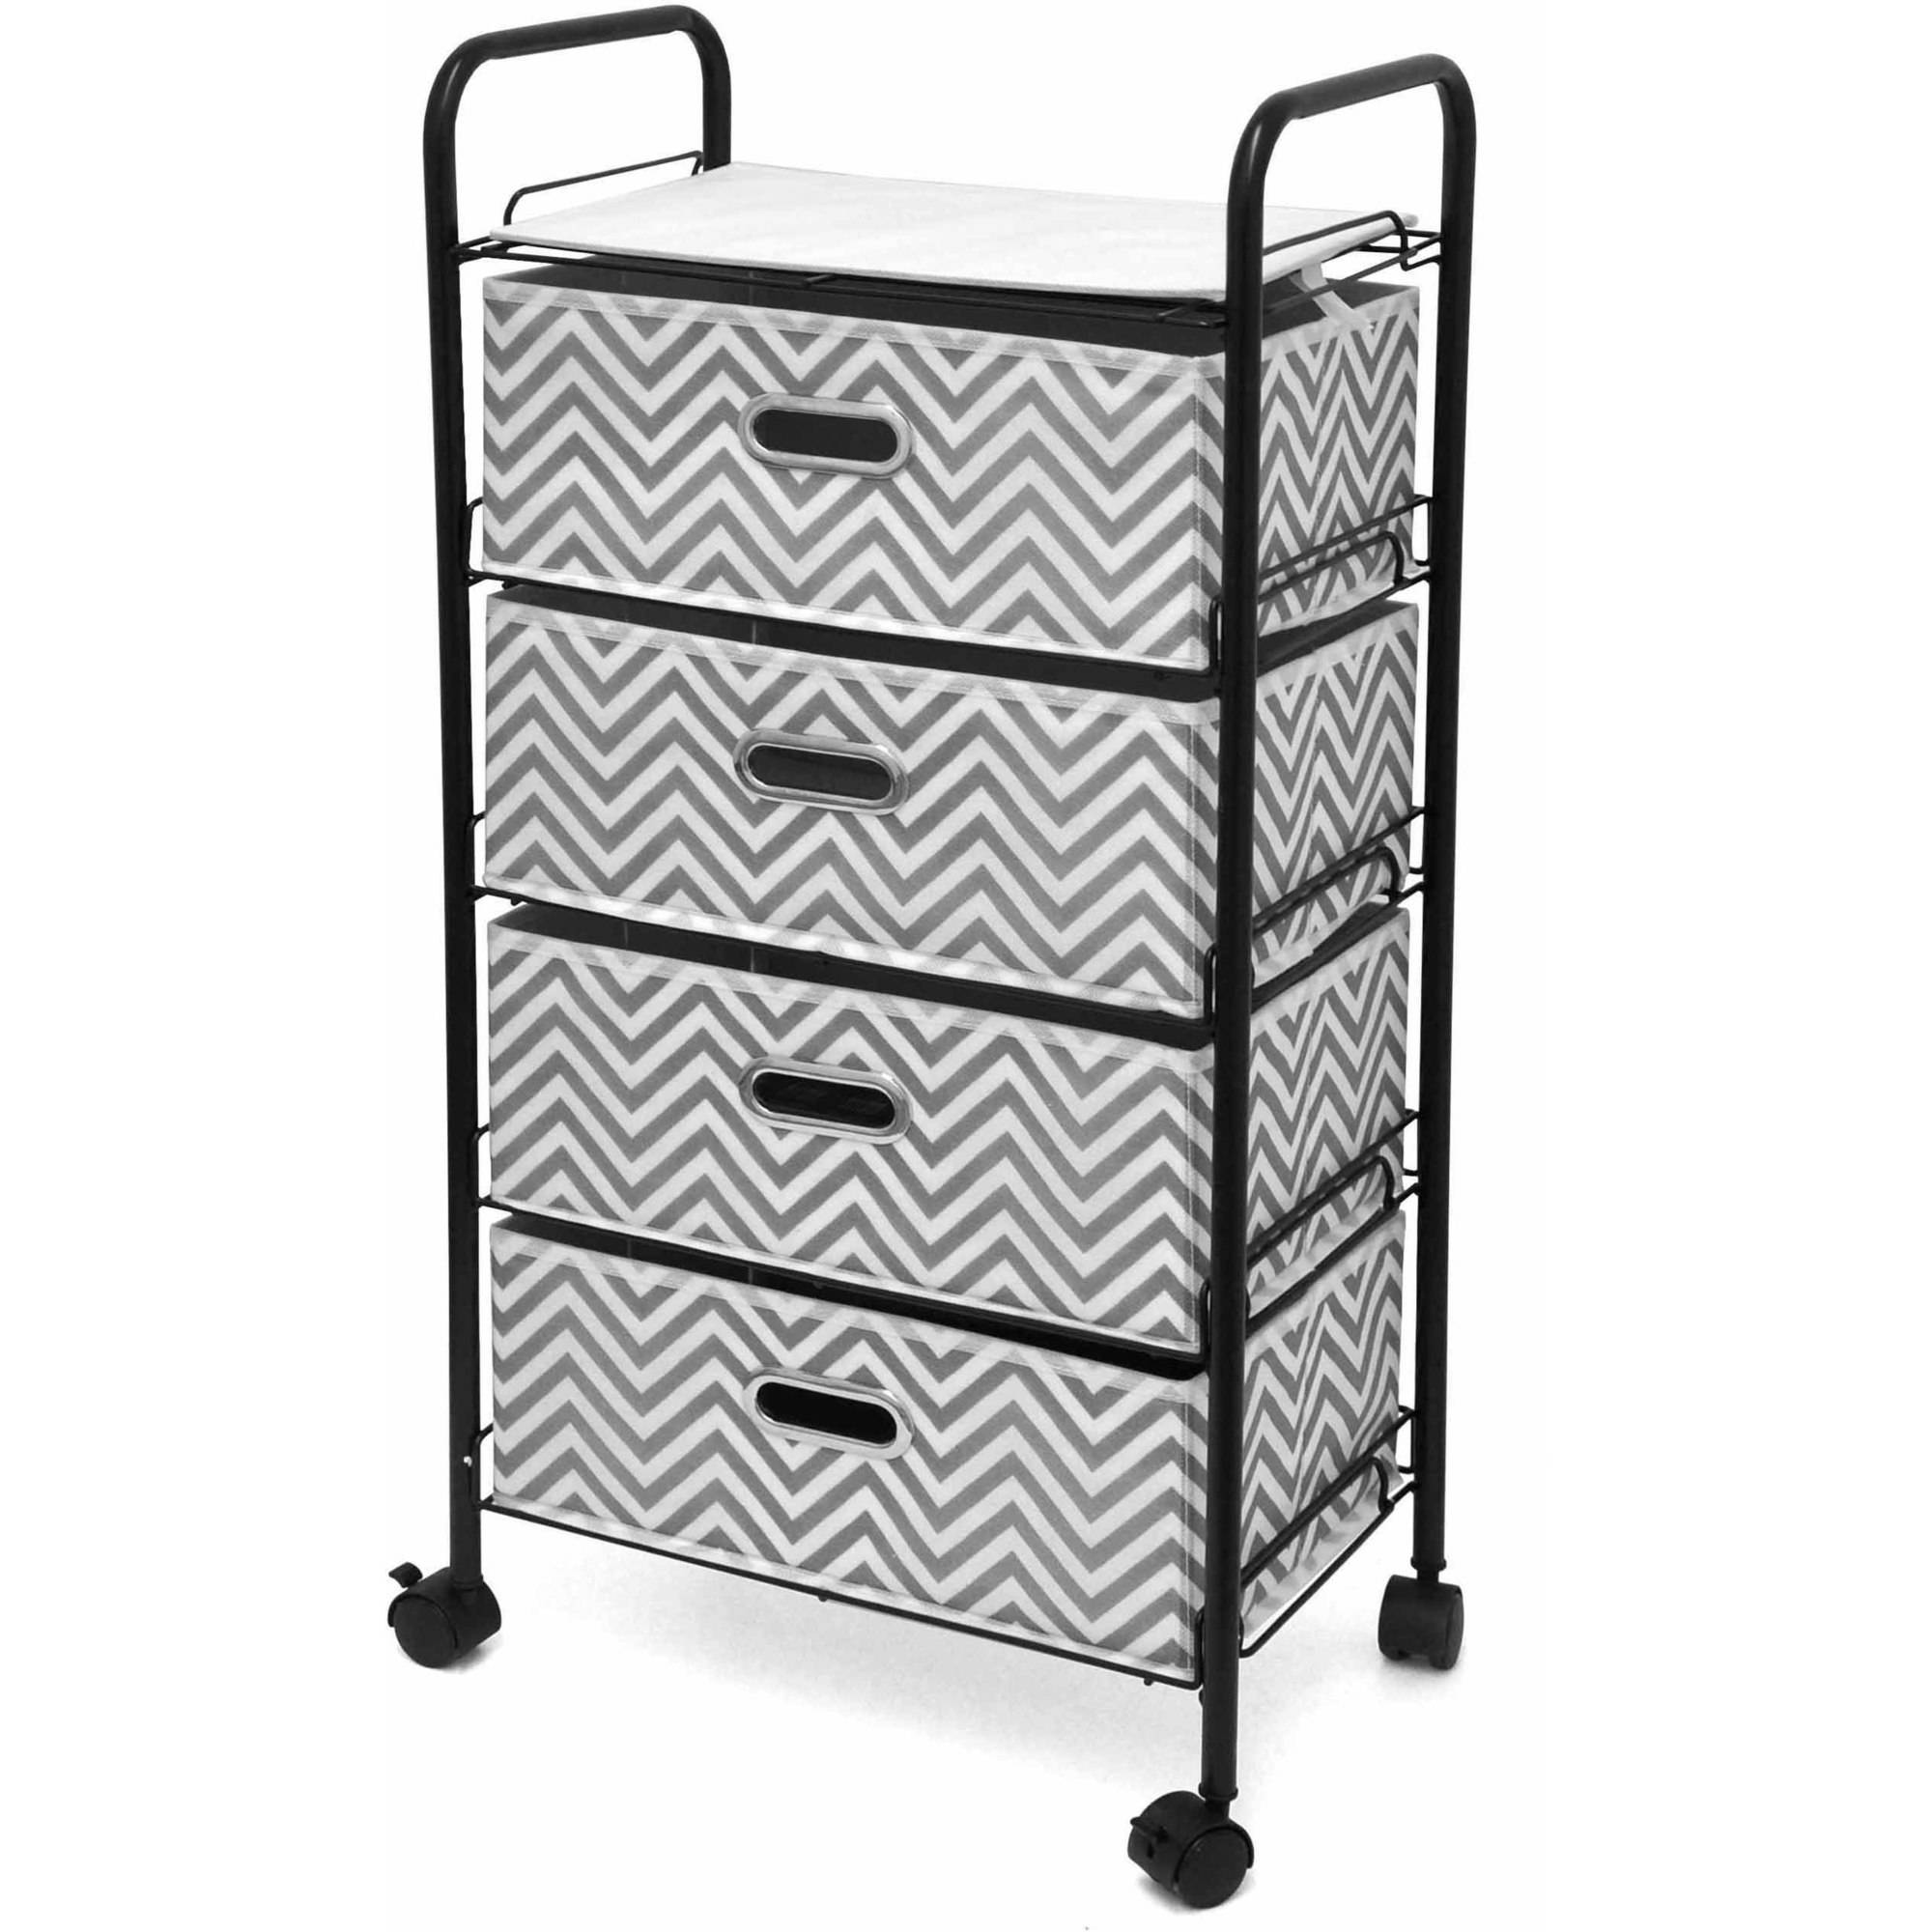 Mainstays 4-Tier Rolling Cart storage, Multiple Colors